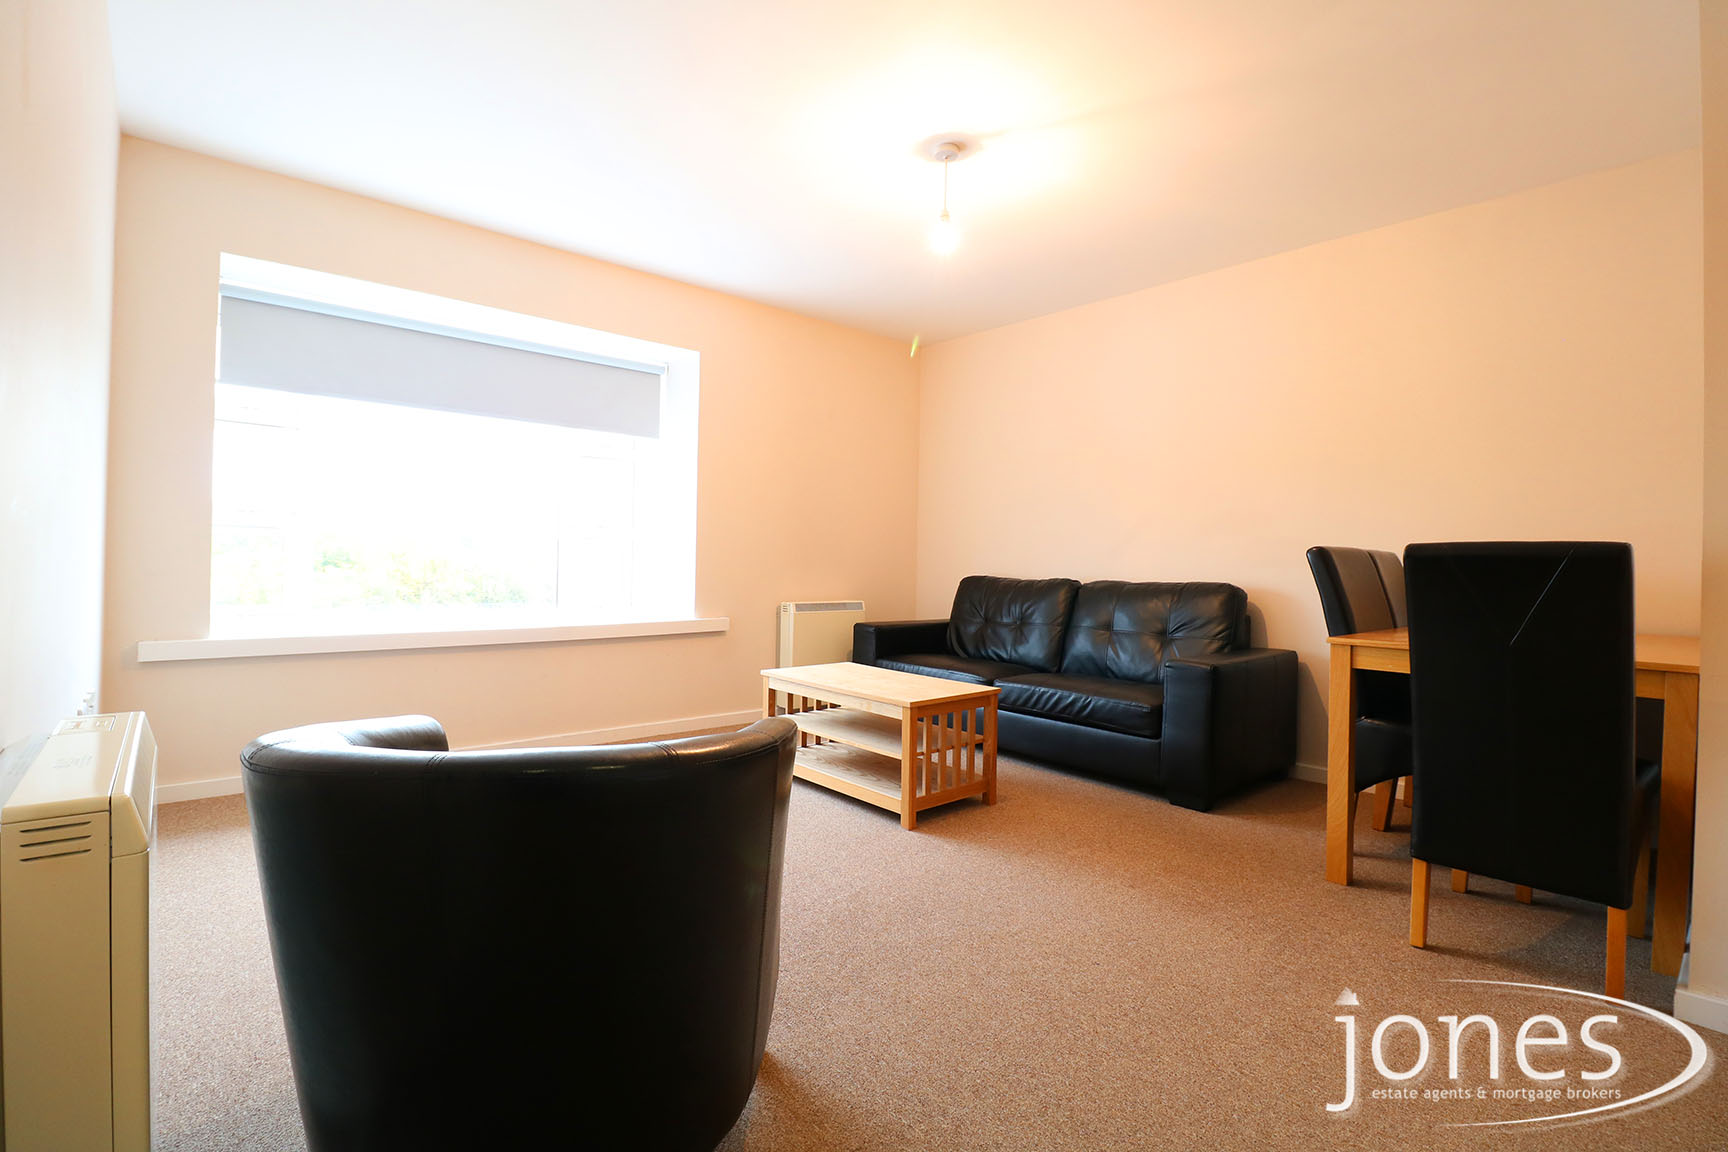 Home for Sale Let - Photo 02 Newport House, Thornaby on Tees, TS17 6SH